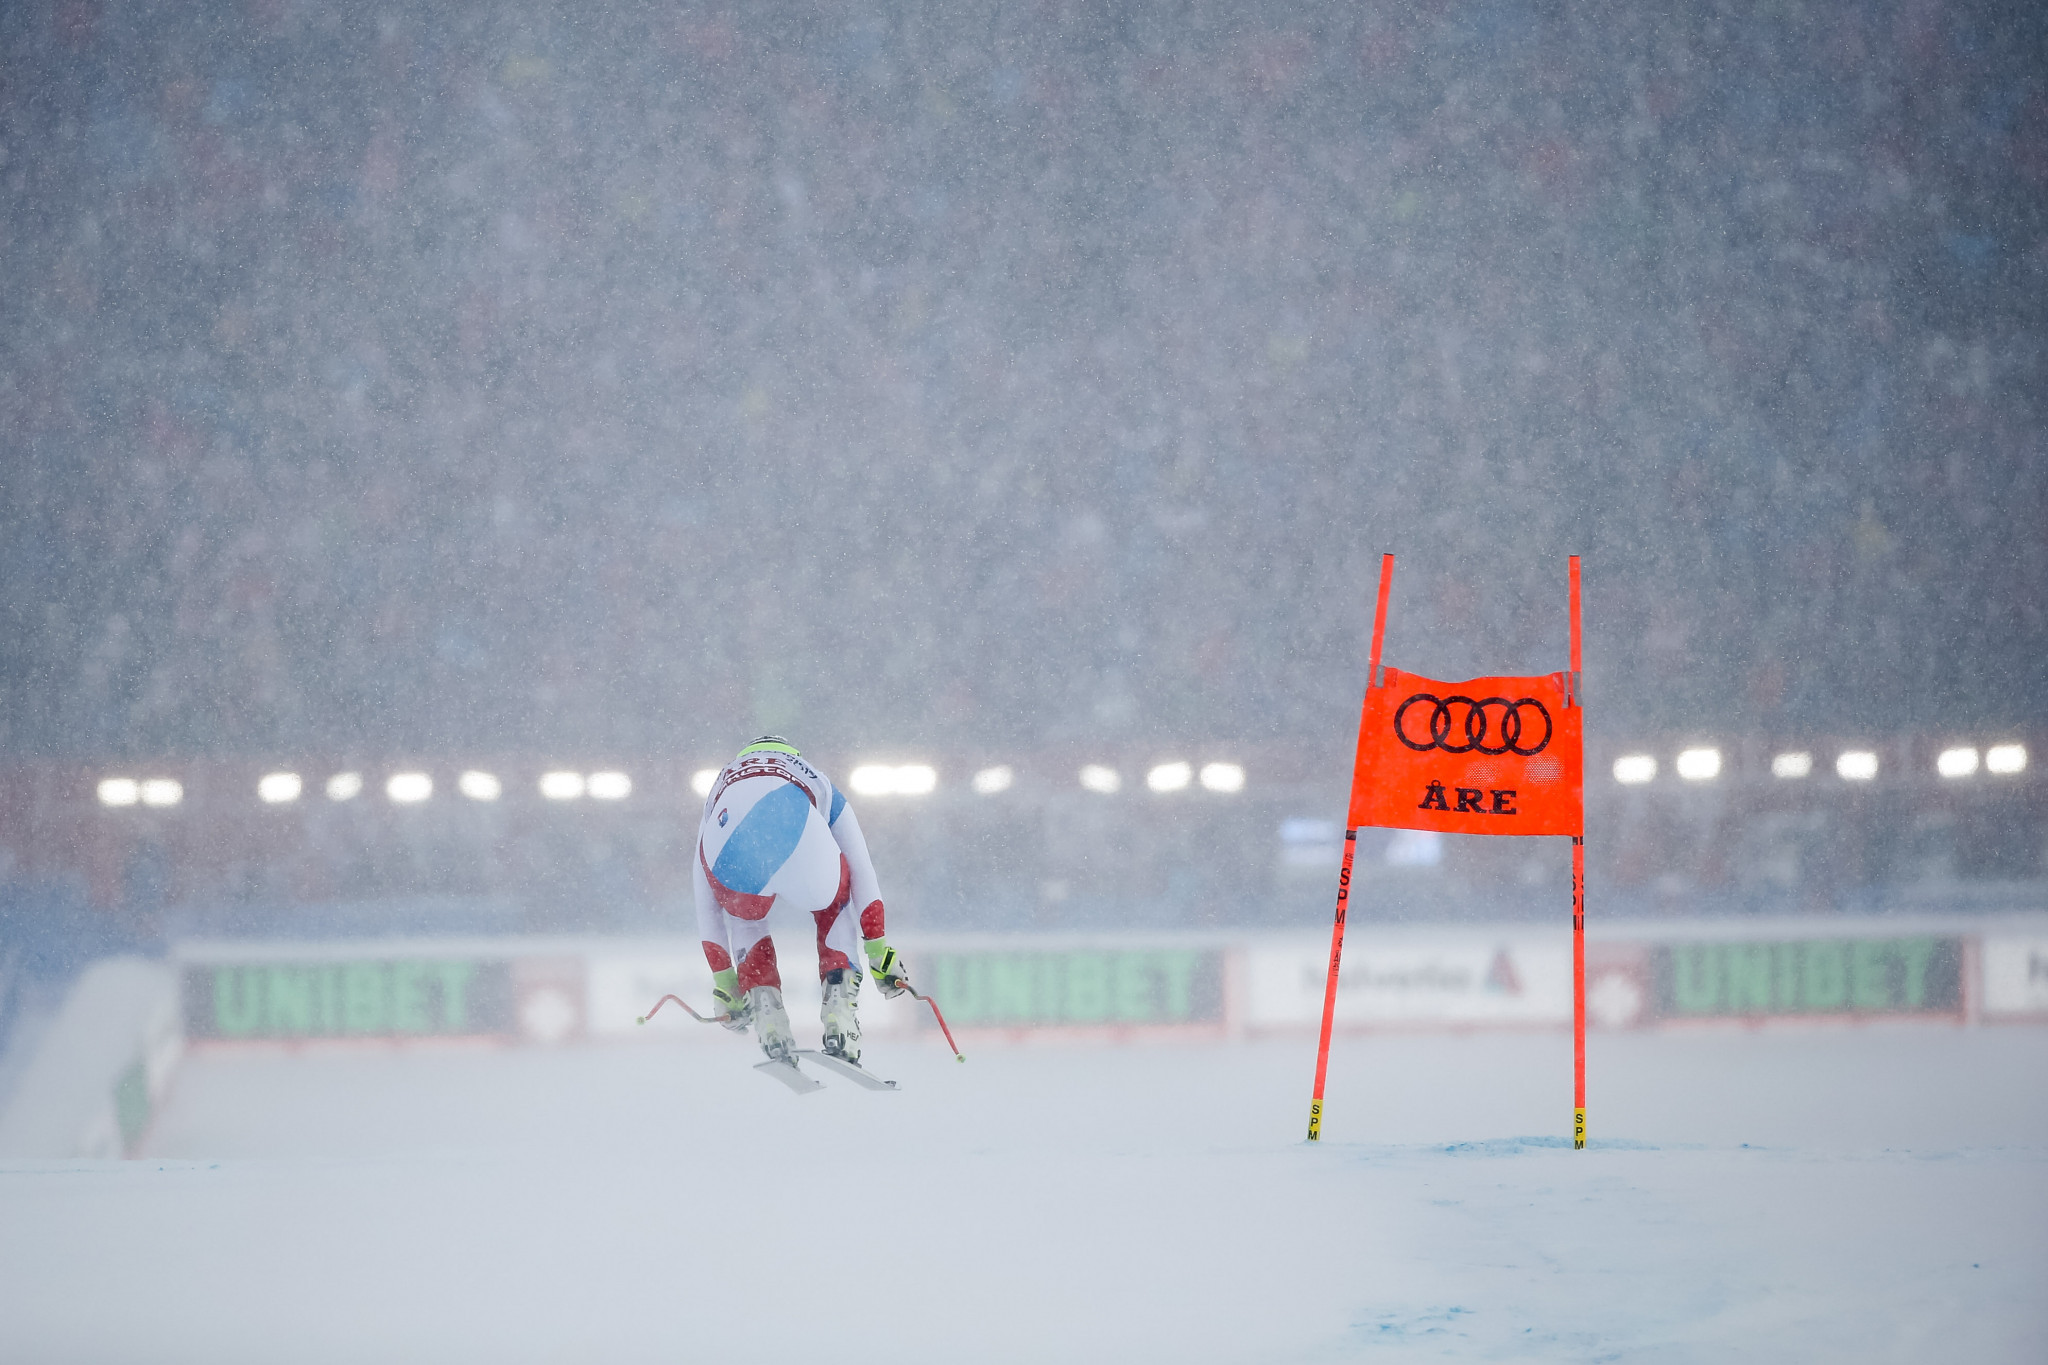 Switzerland's Beat Feuz will hope to extend his lead in the downhill FIS Alpine Skiing World Cup ©Getty Images